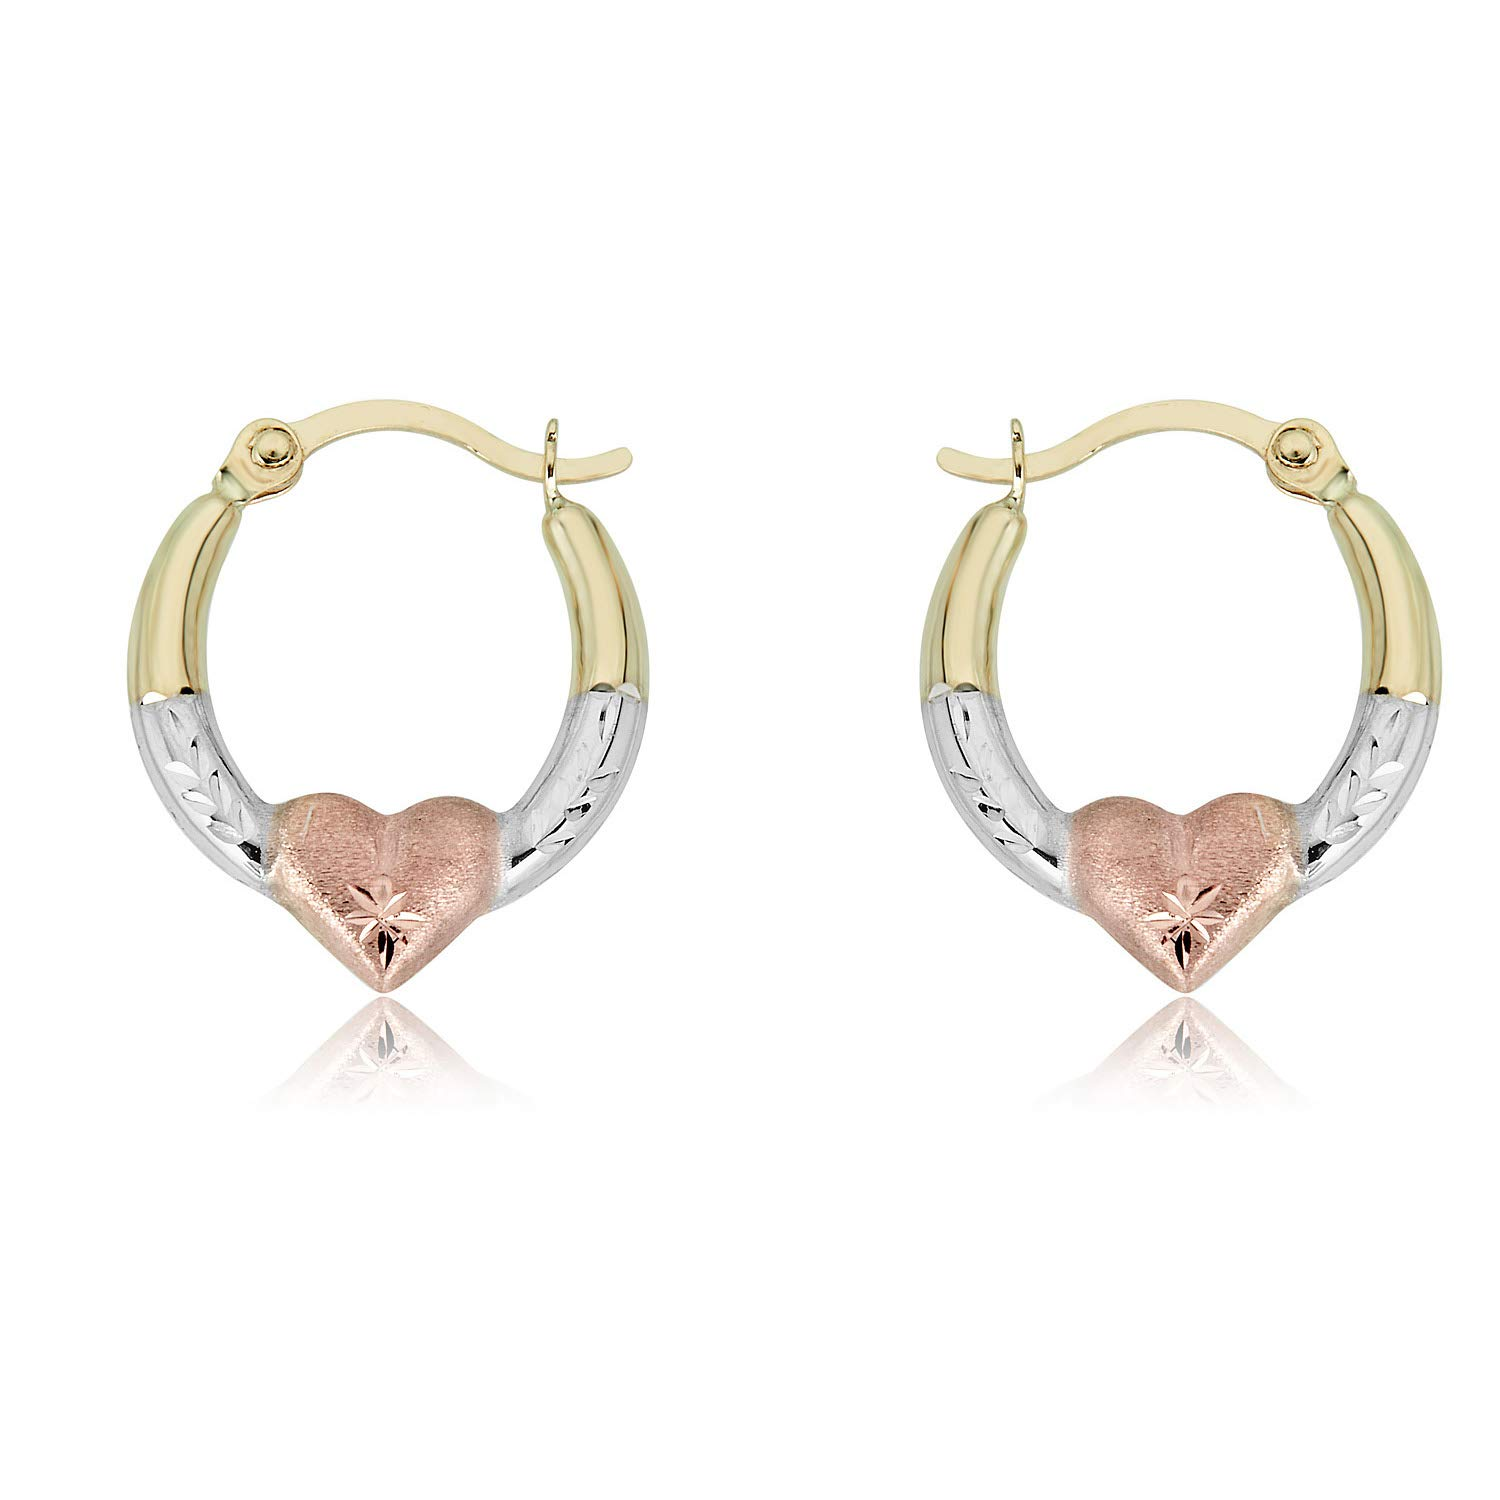 10K Gold Three-Tone Heart Creole Hoop Earrings by AVORA